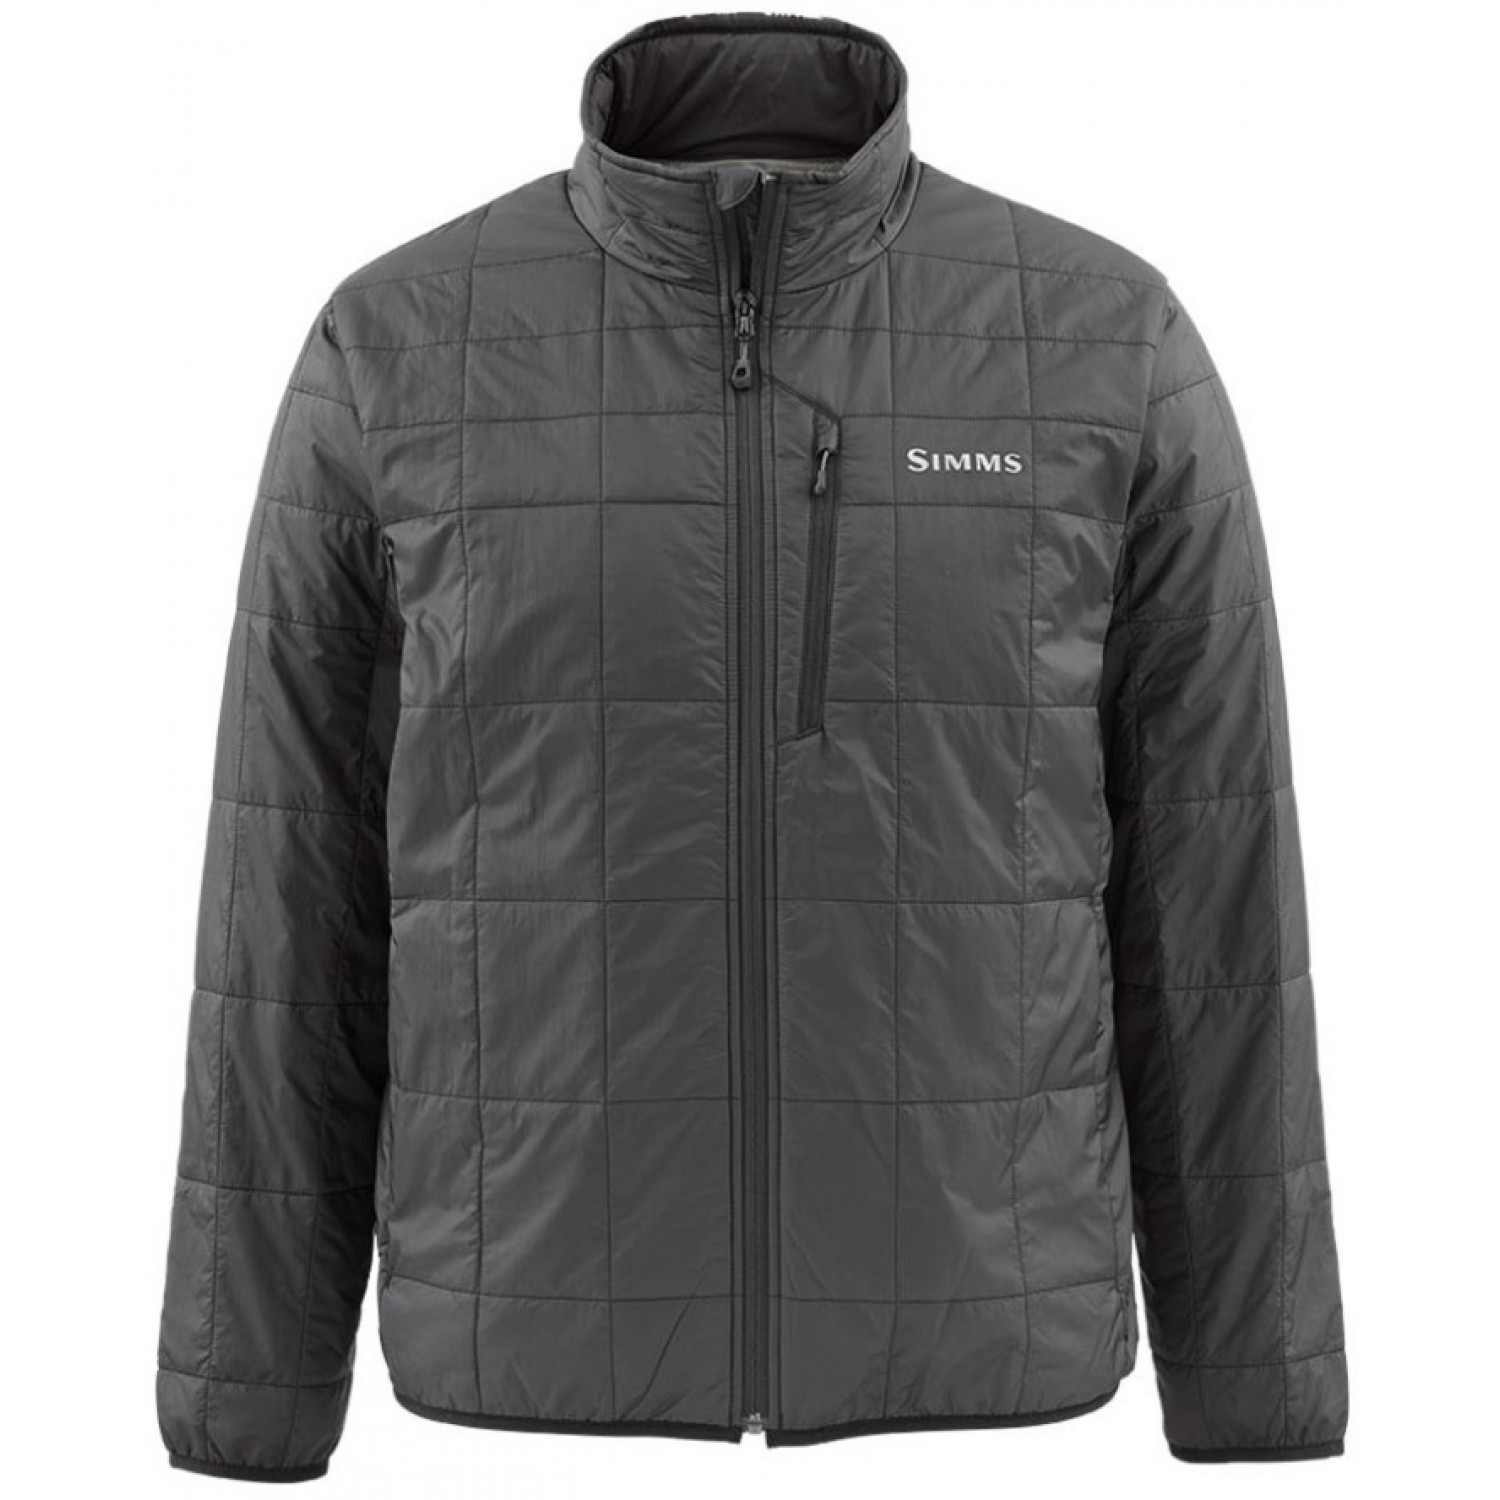 Simms Fall Run Jacket Black